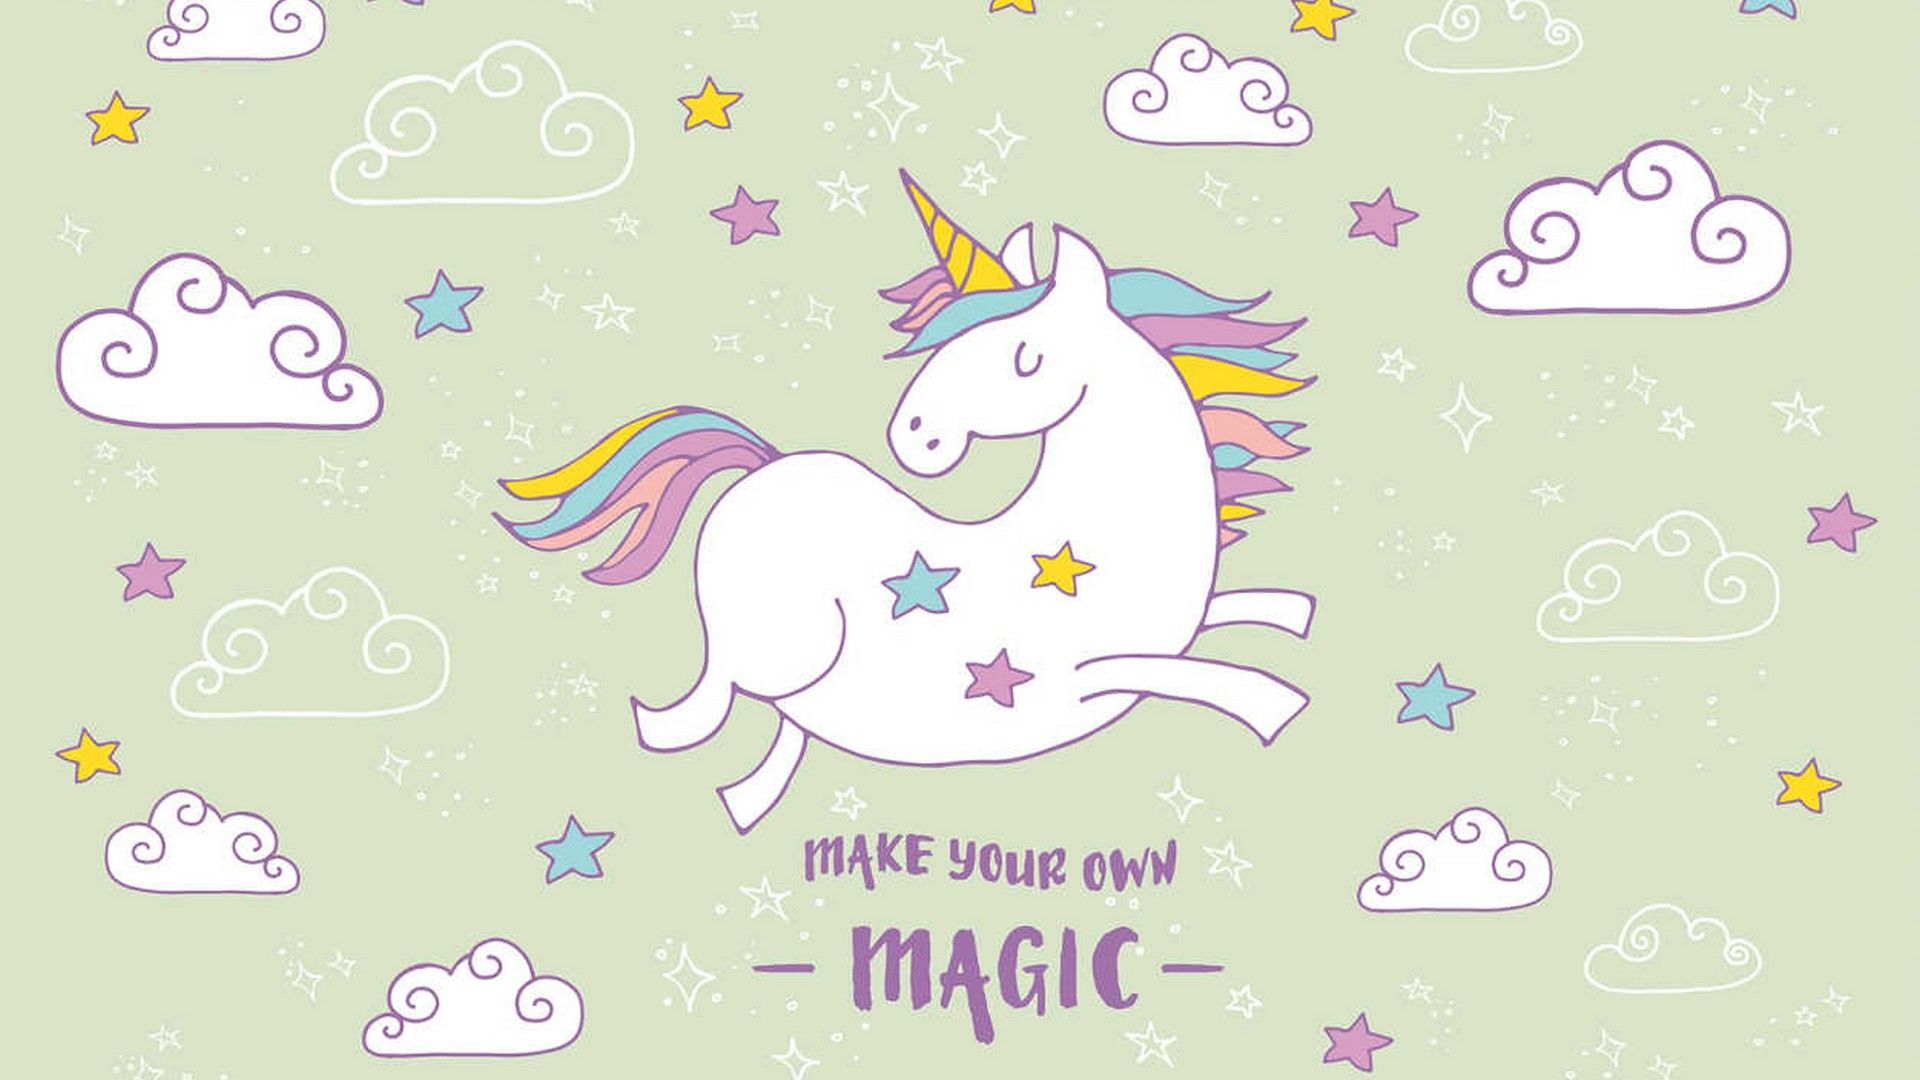 Wallpapers Computer Cute Unicorn 2021 Live Wallpaper Hd Cute Unicorn Unicorn Photos Unicorn Wallpaper Galaxy unicorn wallpaper for computer